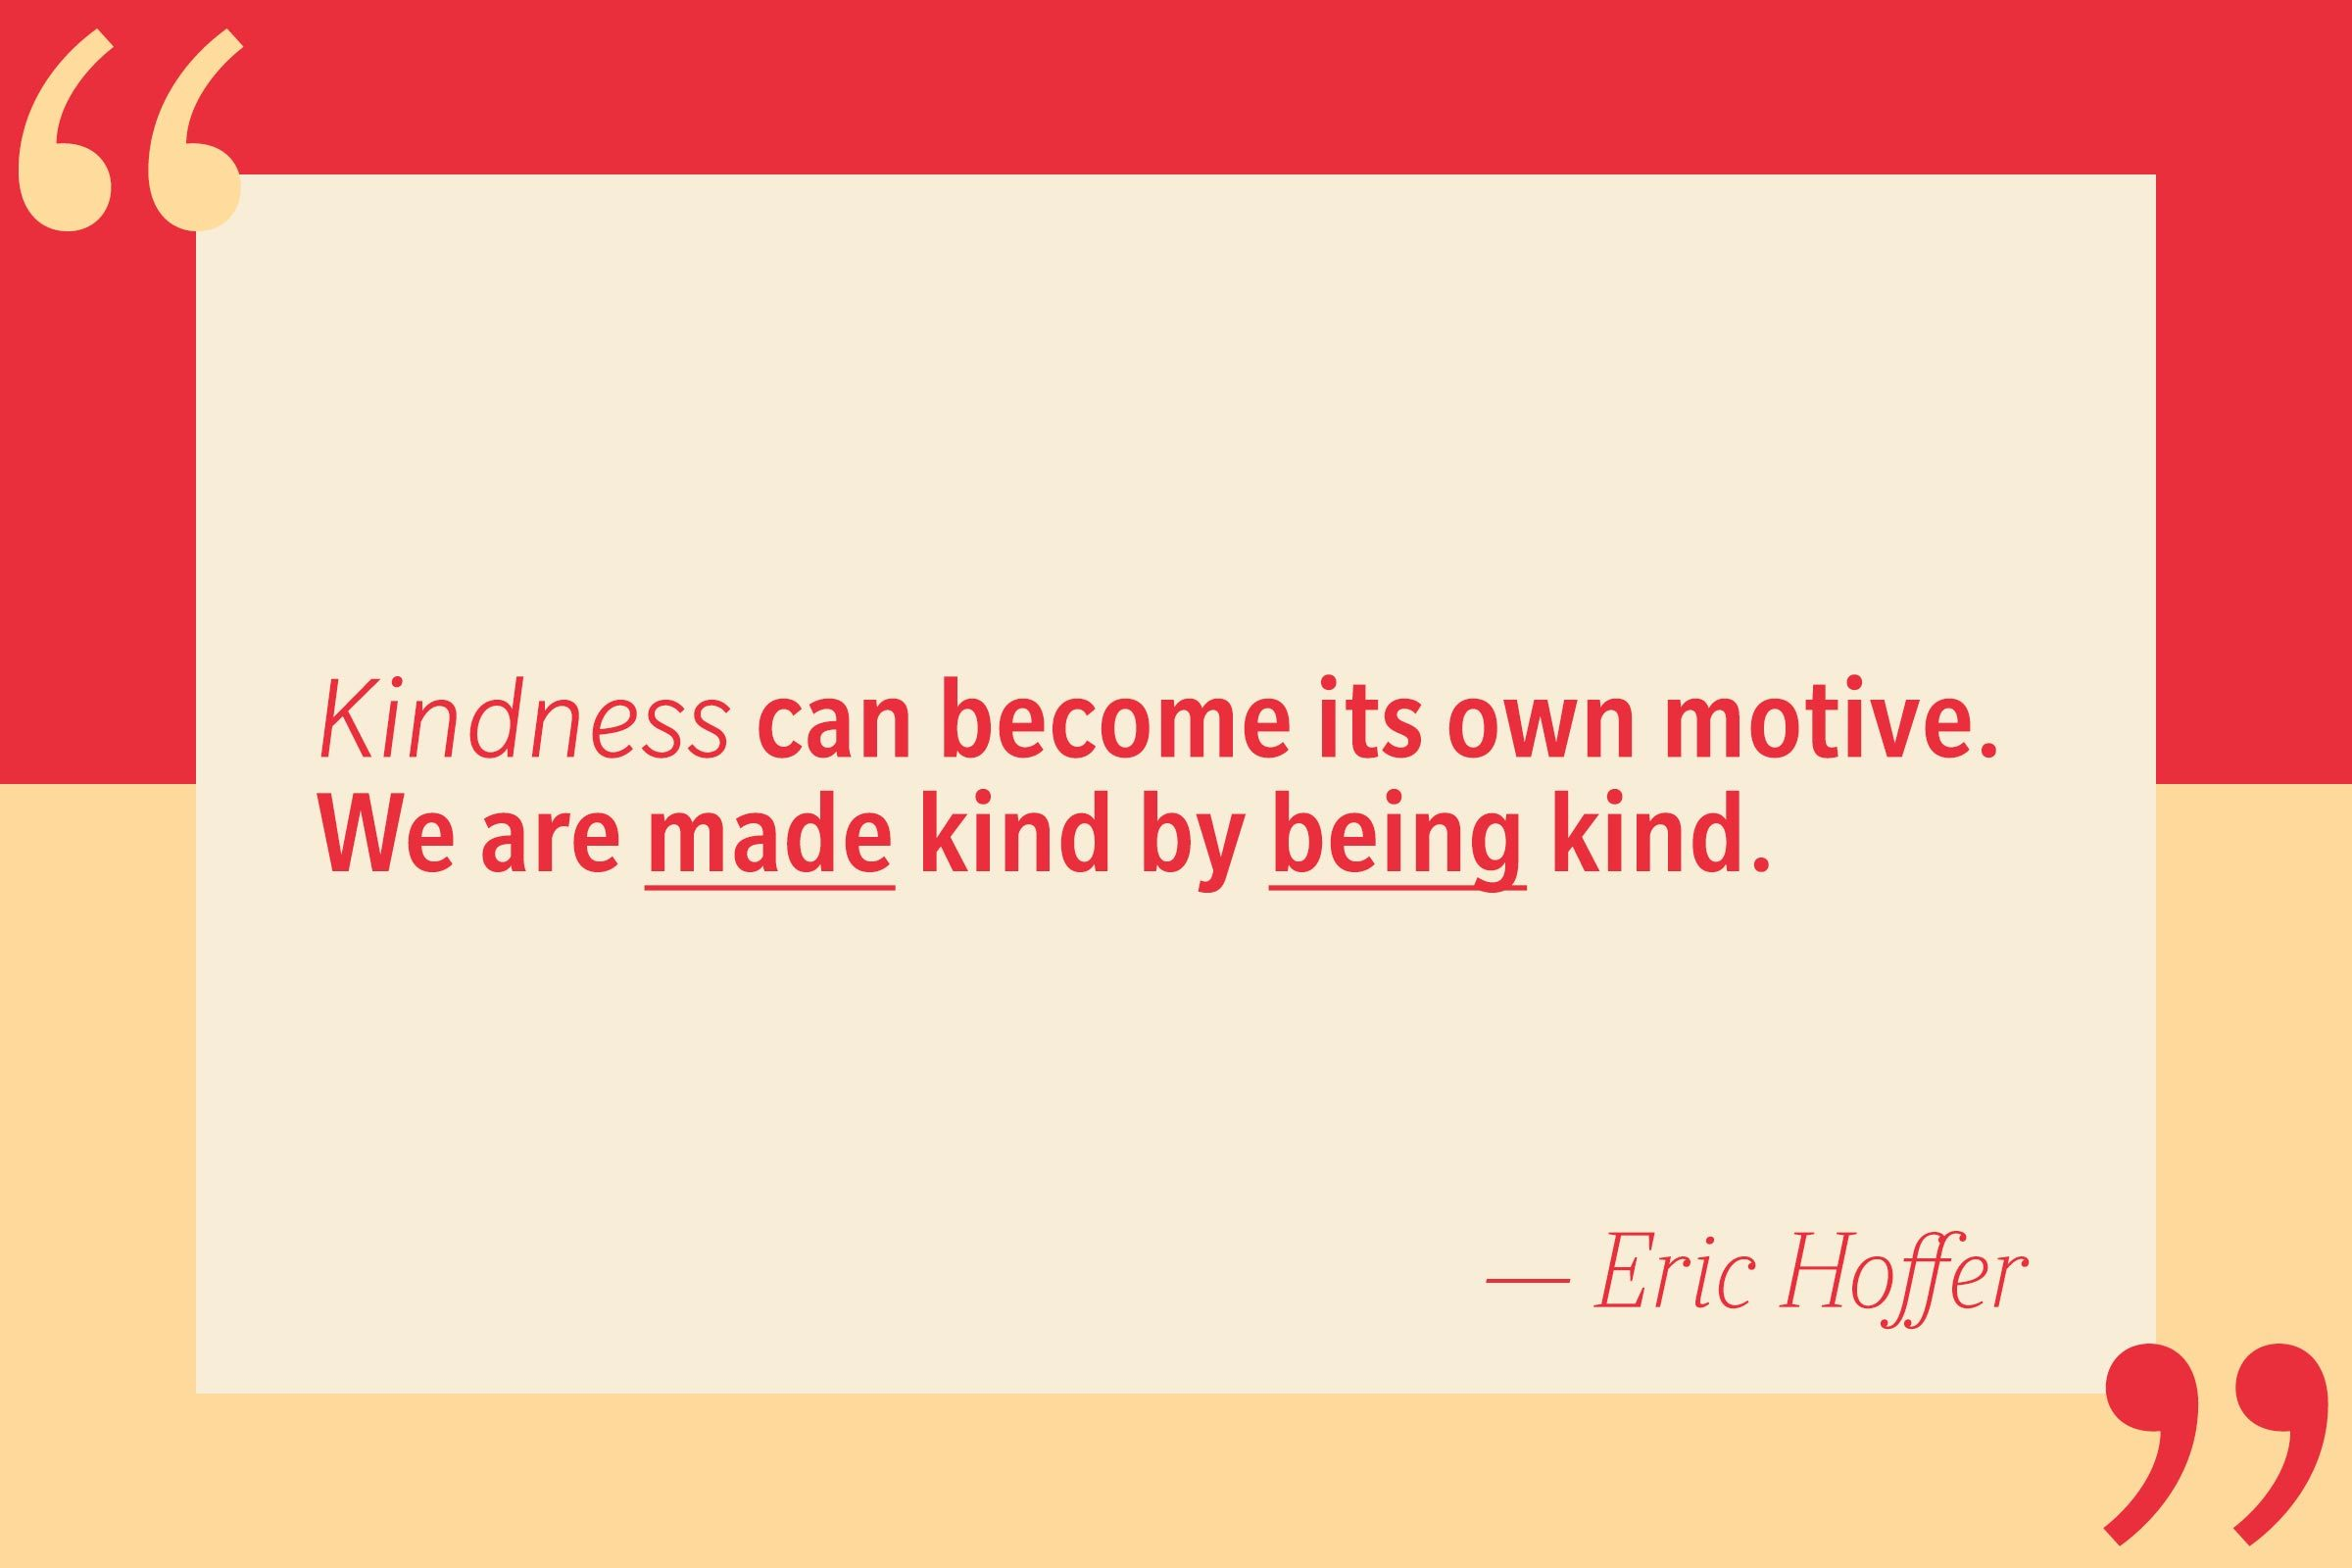 Kindness can become its own motive. We are made kind by being kind. — Eric Hoffer